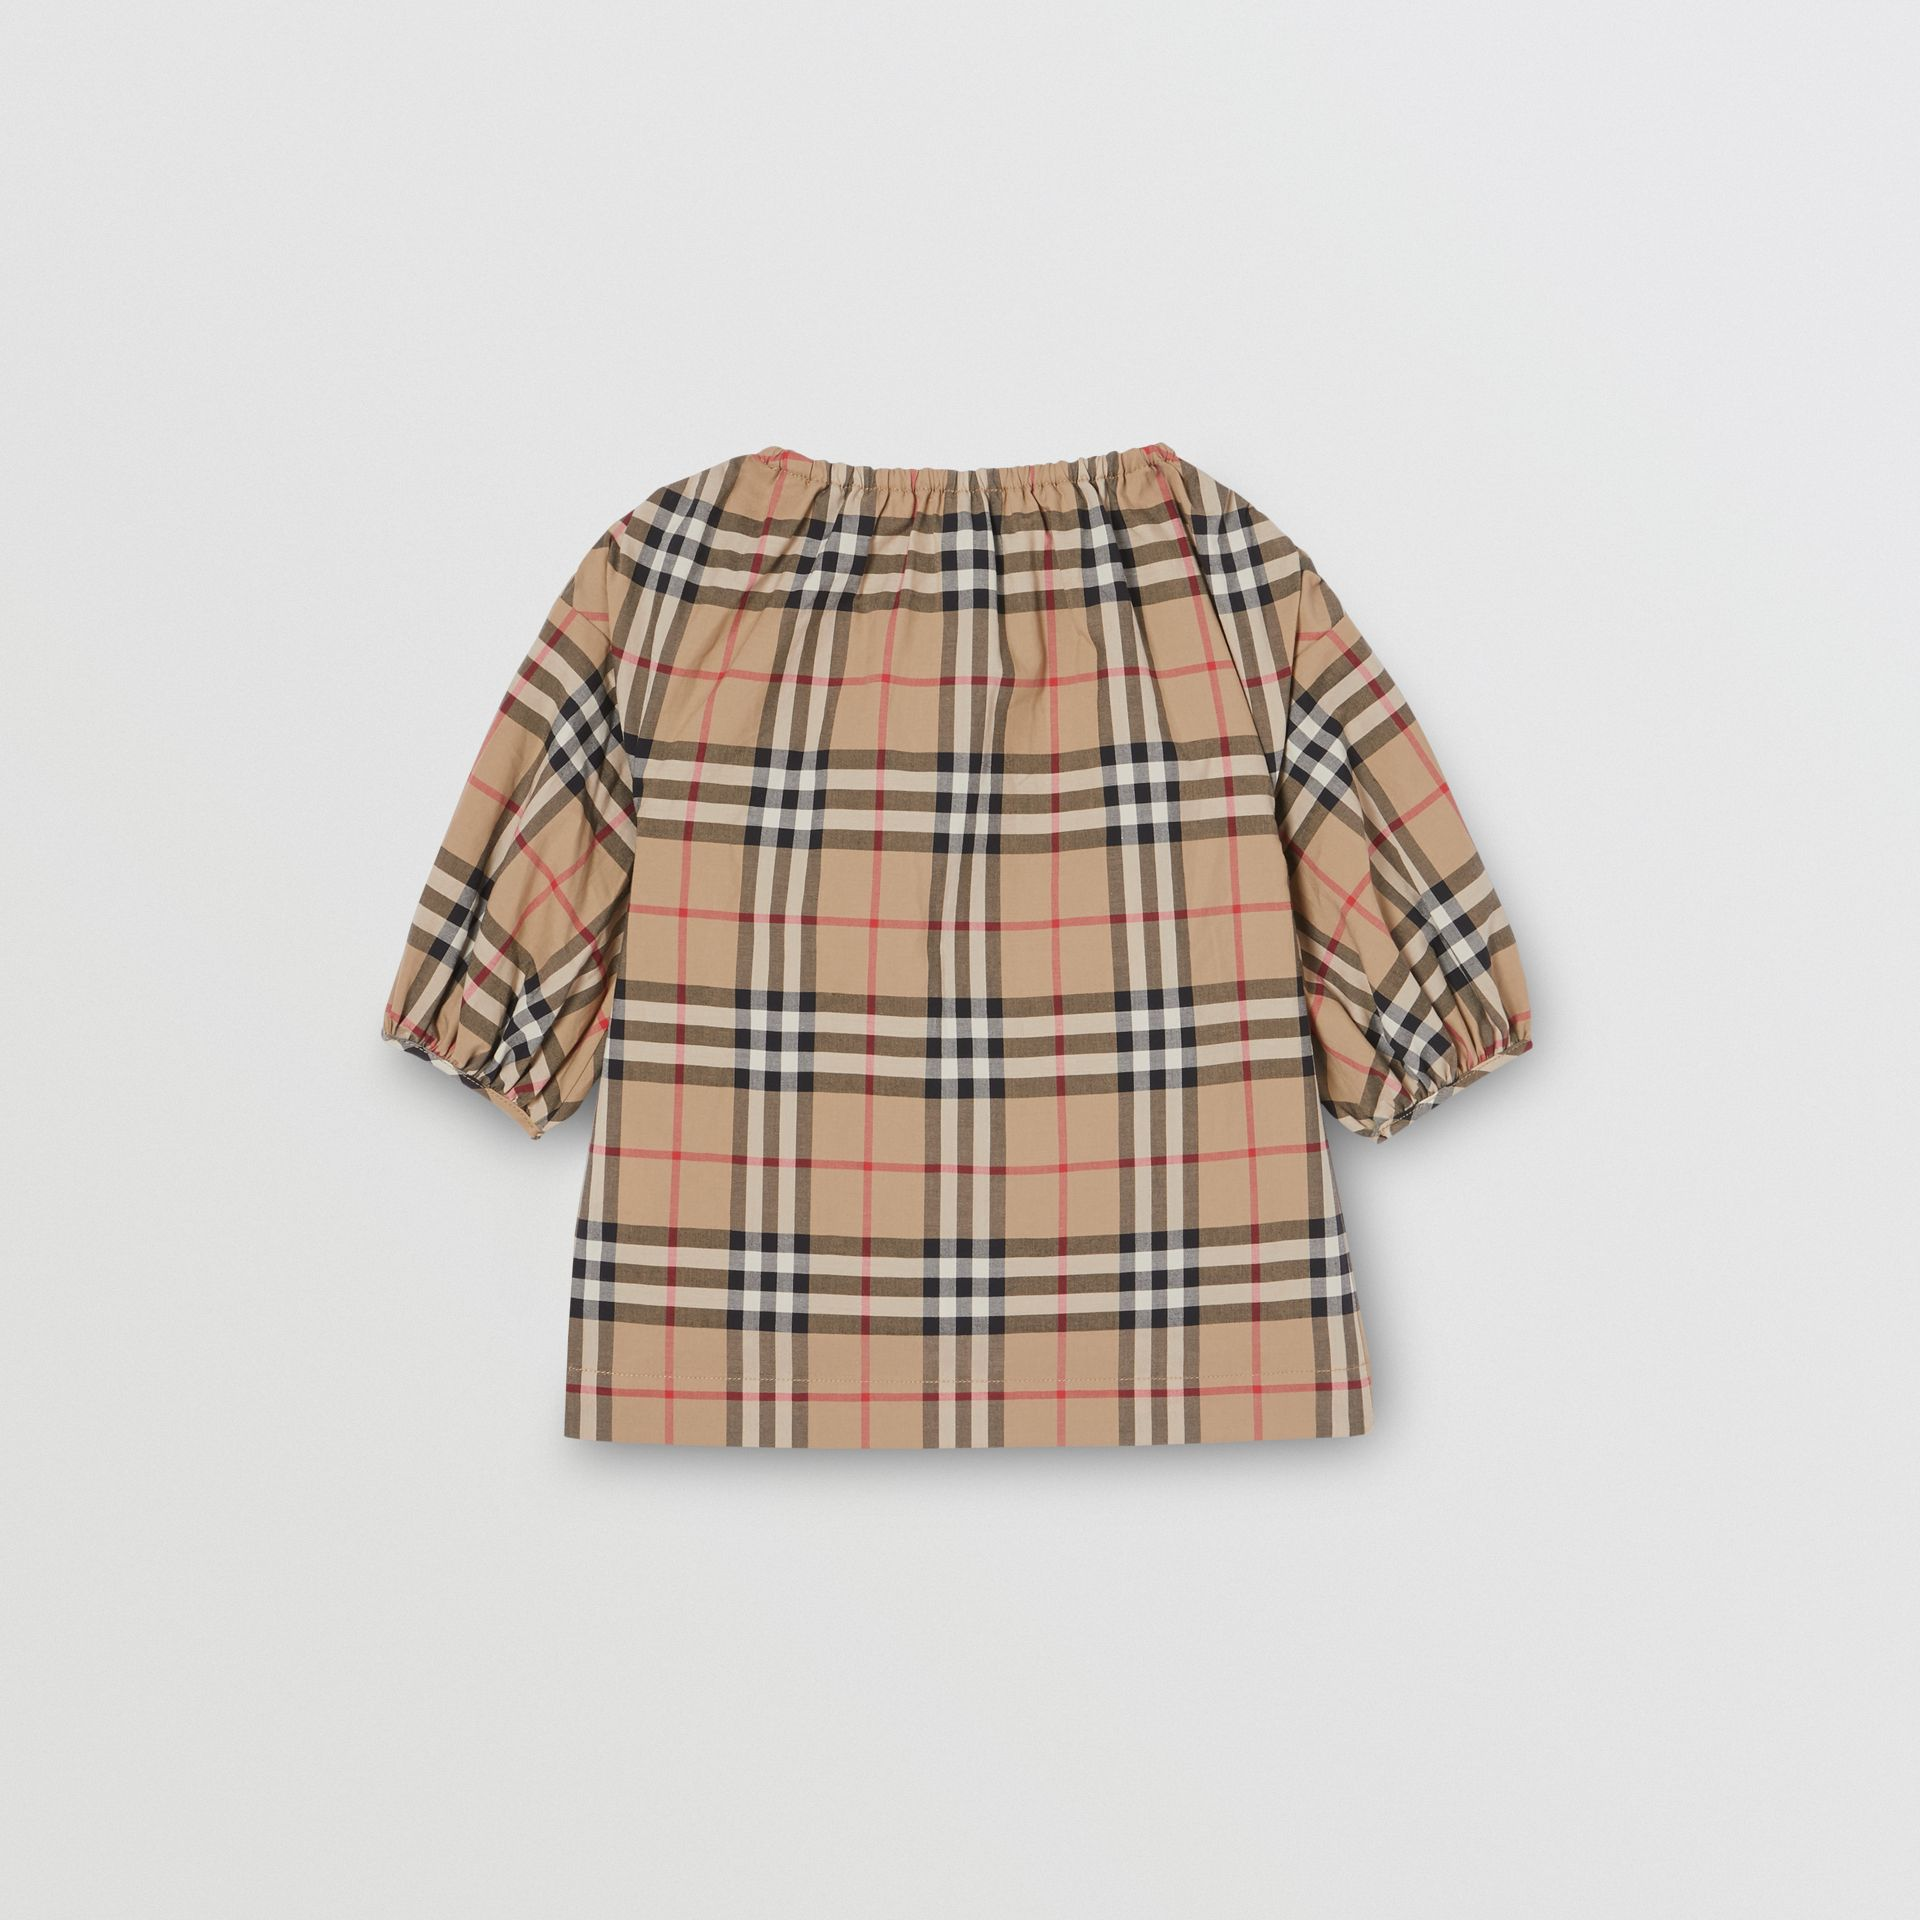 Gathered Sleeve Vintage Check Cotton Dress in Archive Beige - Children | Burberry - gallery image 3